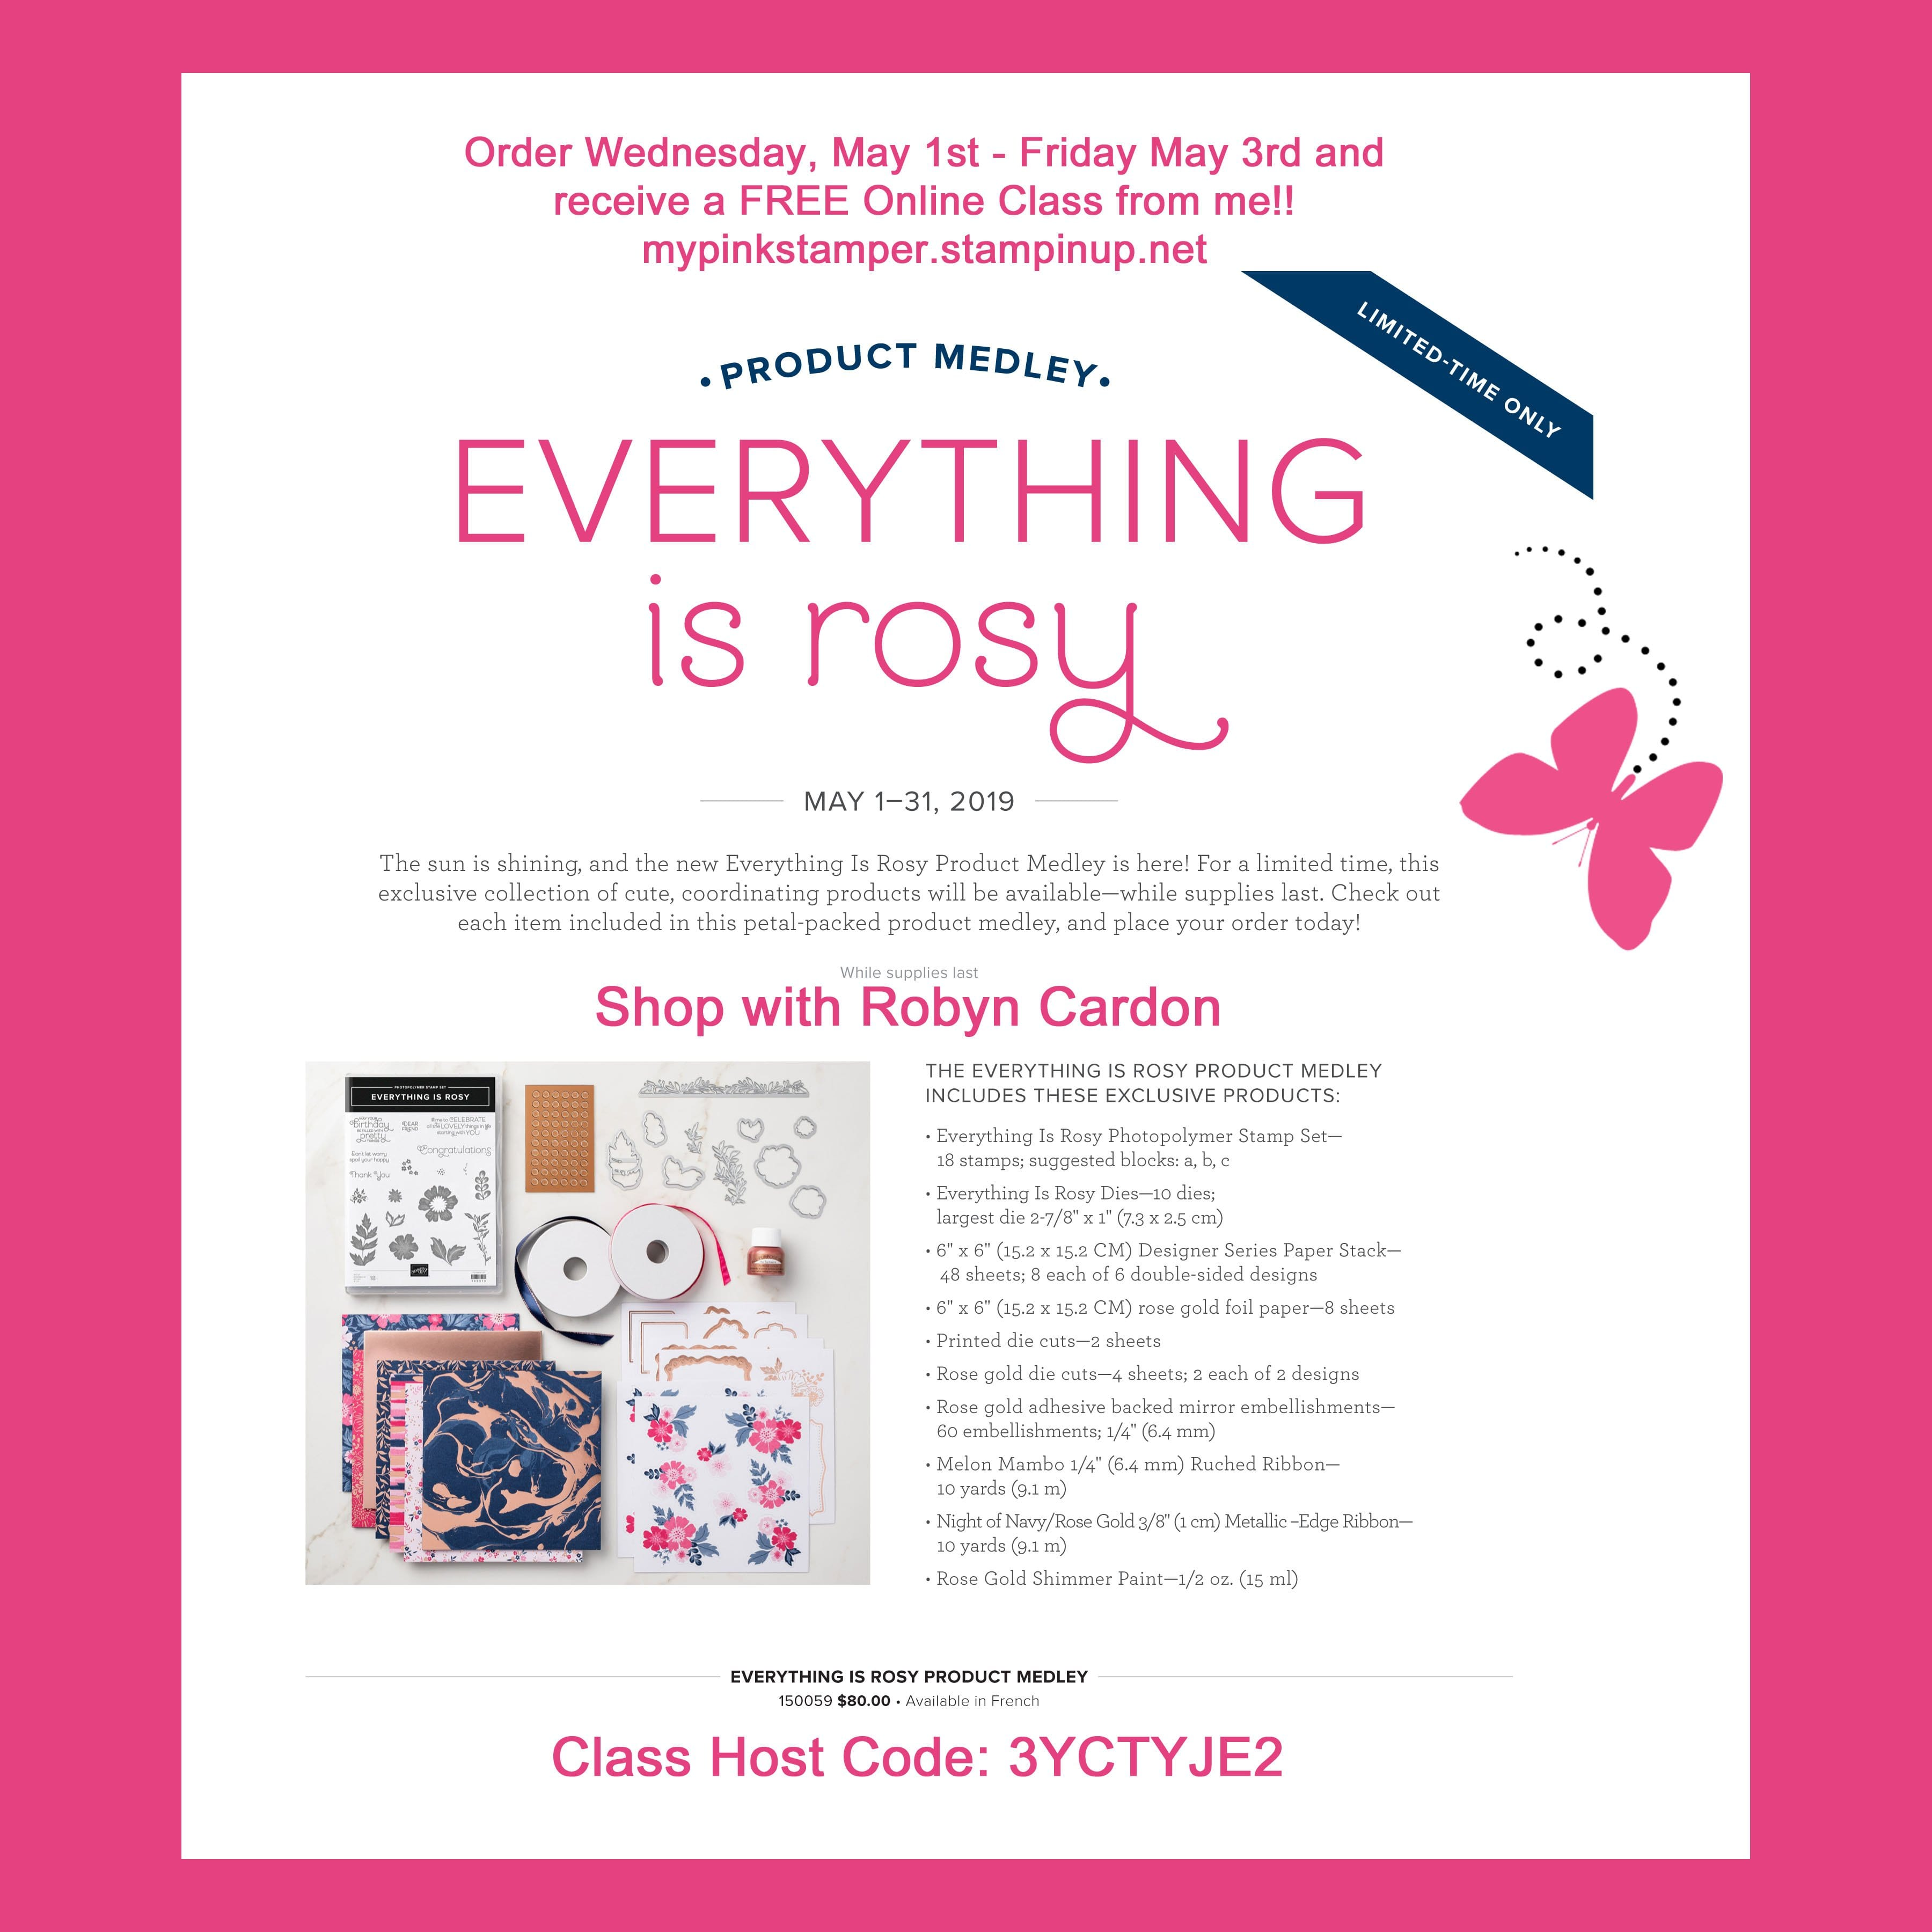 Everything is Rosy Limited Edition Product Medley Online Class!